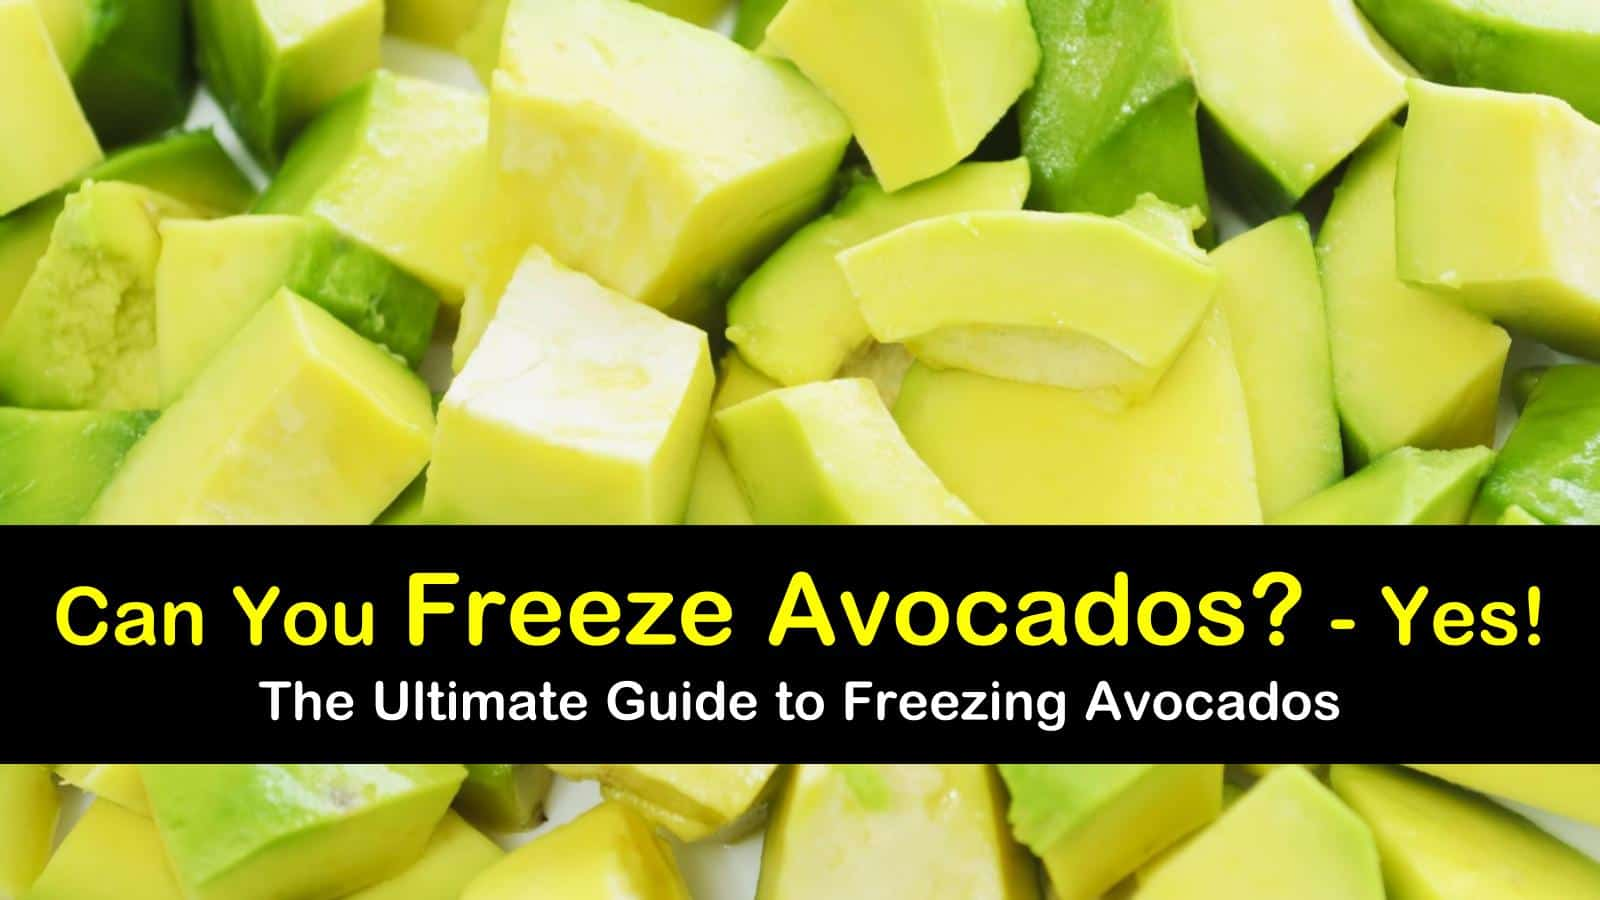 3 Simple Ways To Freeze Avocados